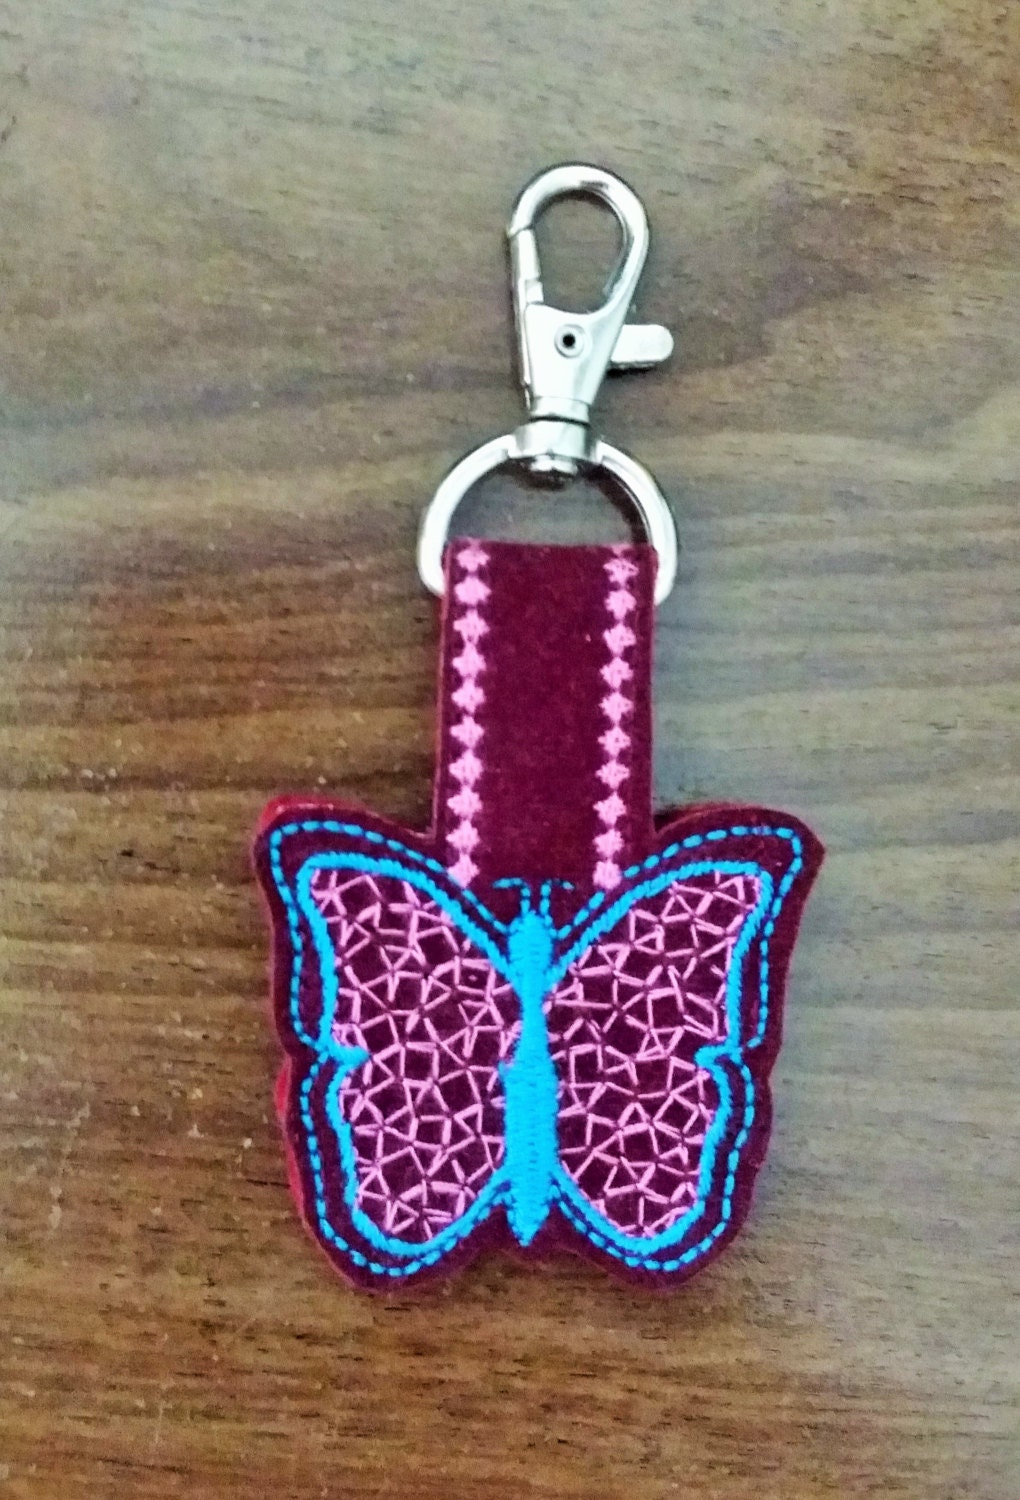 Ith key fobs machine embroidery designs in the hoop